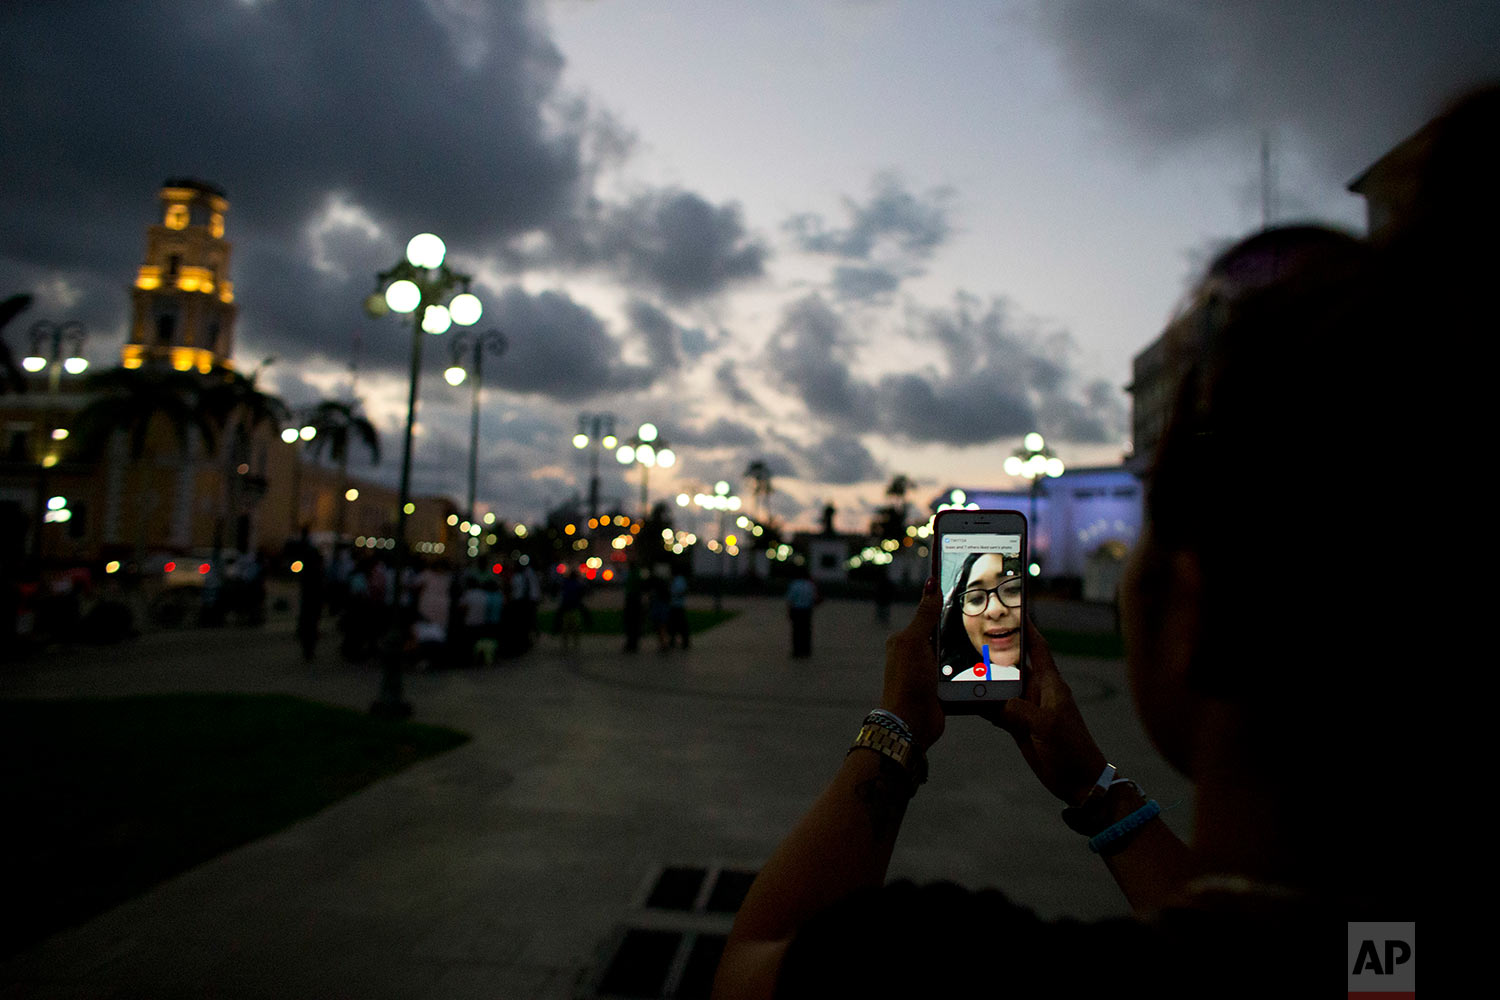 Letty Stegall speaks with her daughter on a video call as she walks near the port in Veracruz, Mexico. (AP Photo/Rebecca Blackwell)